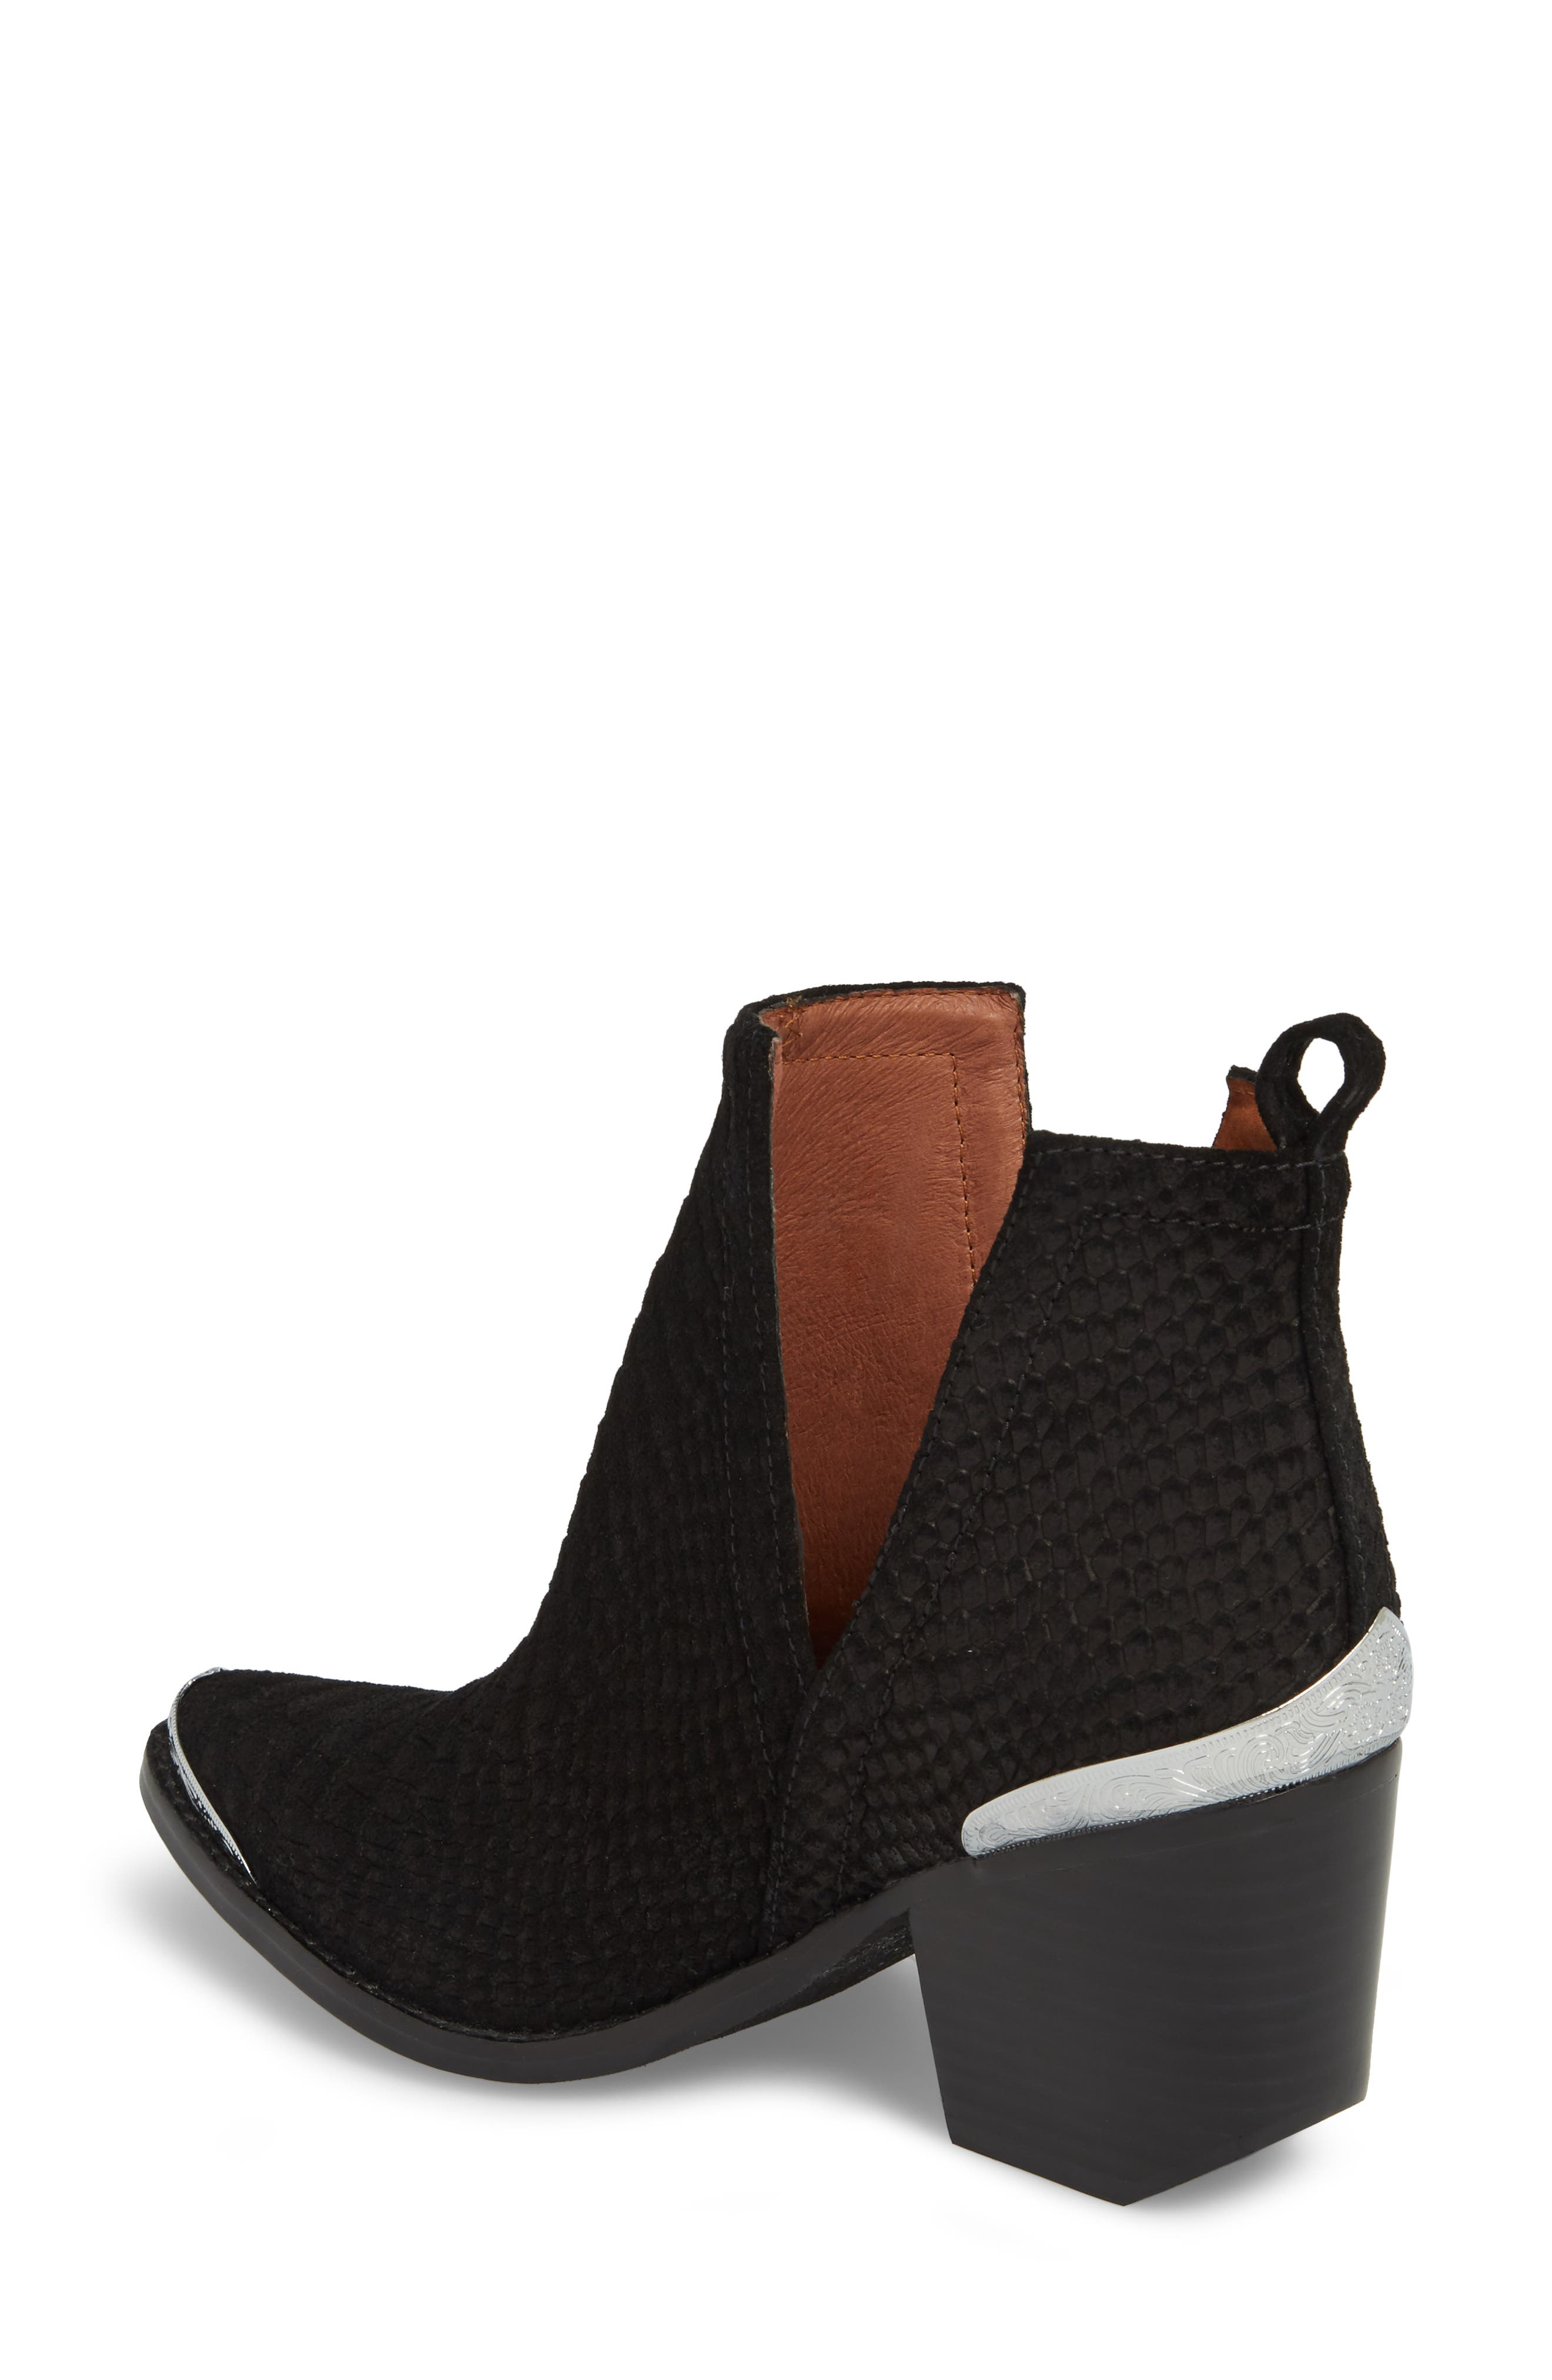 Cromwell Cutout Western Boot,                             Alternate thumbnail 2, color,                             Black Suede/ Snake